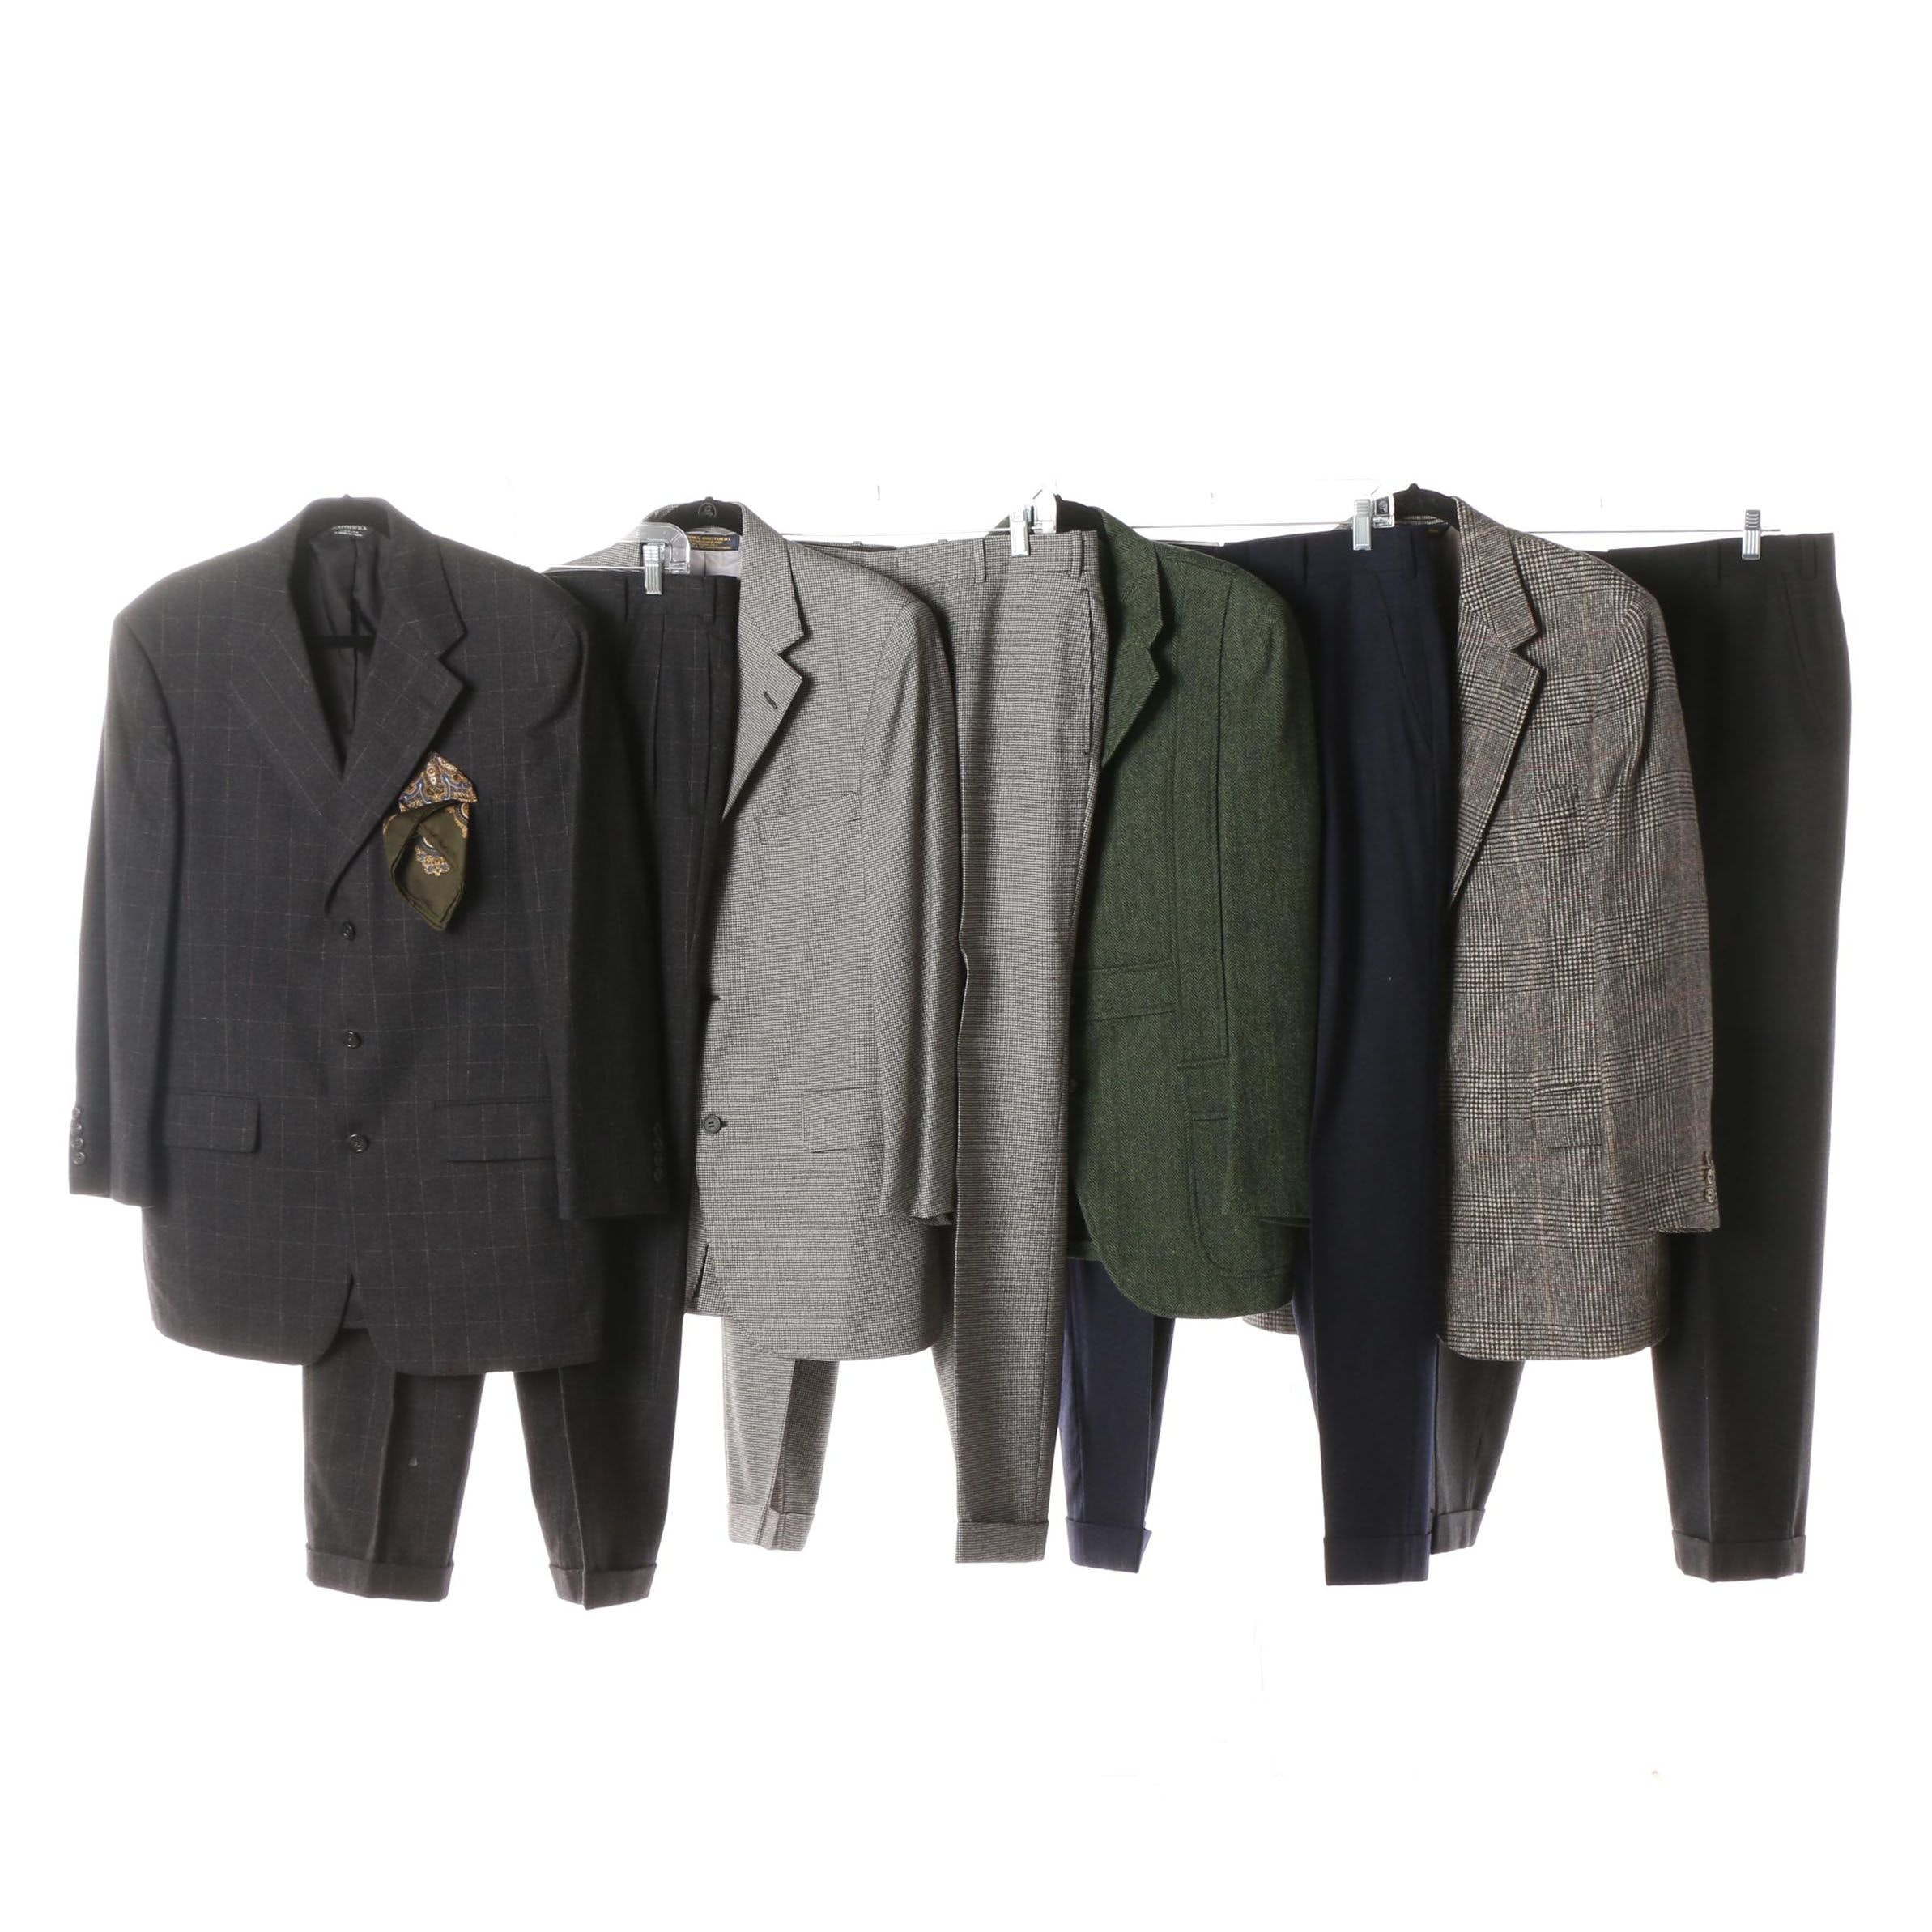 Men's Brooks Brothers and other Wool Suit Separates including Camel Hair